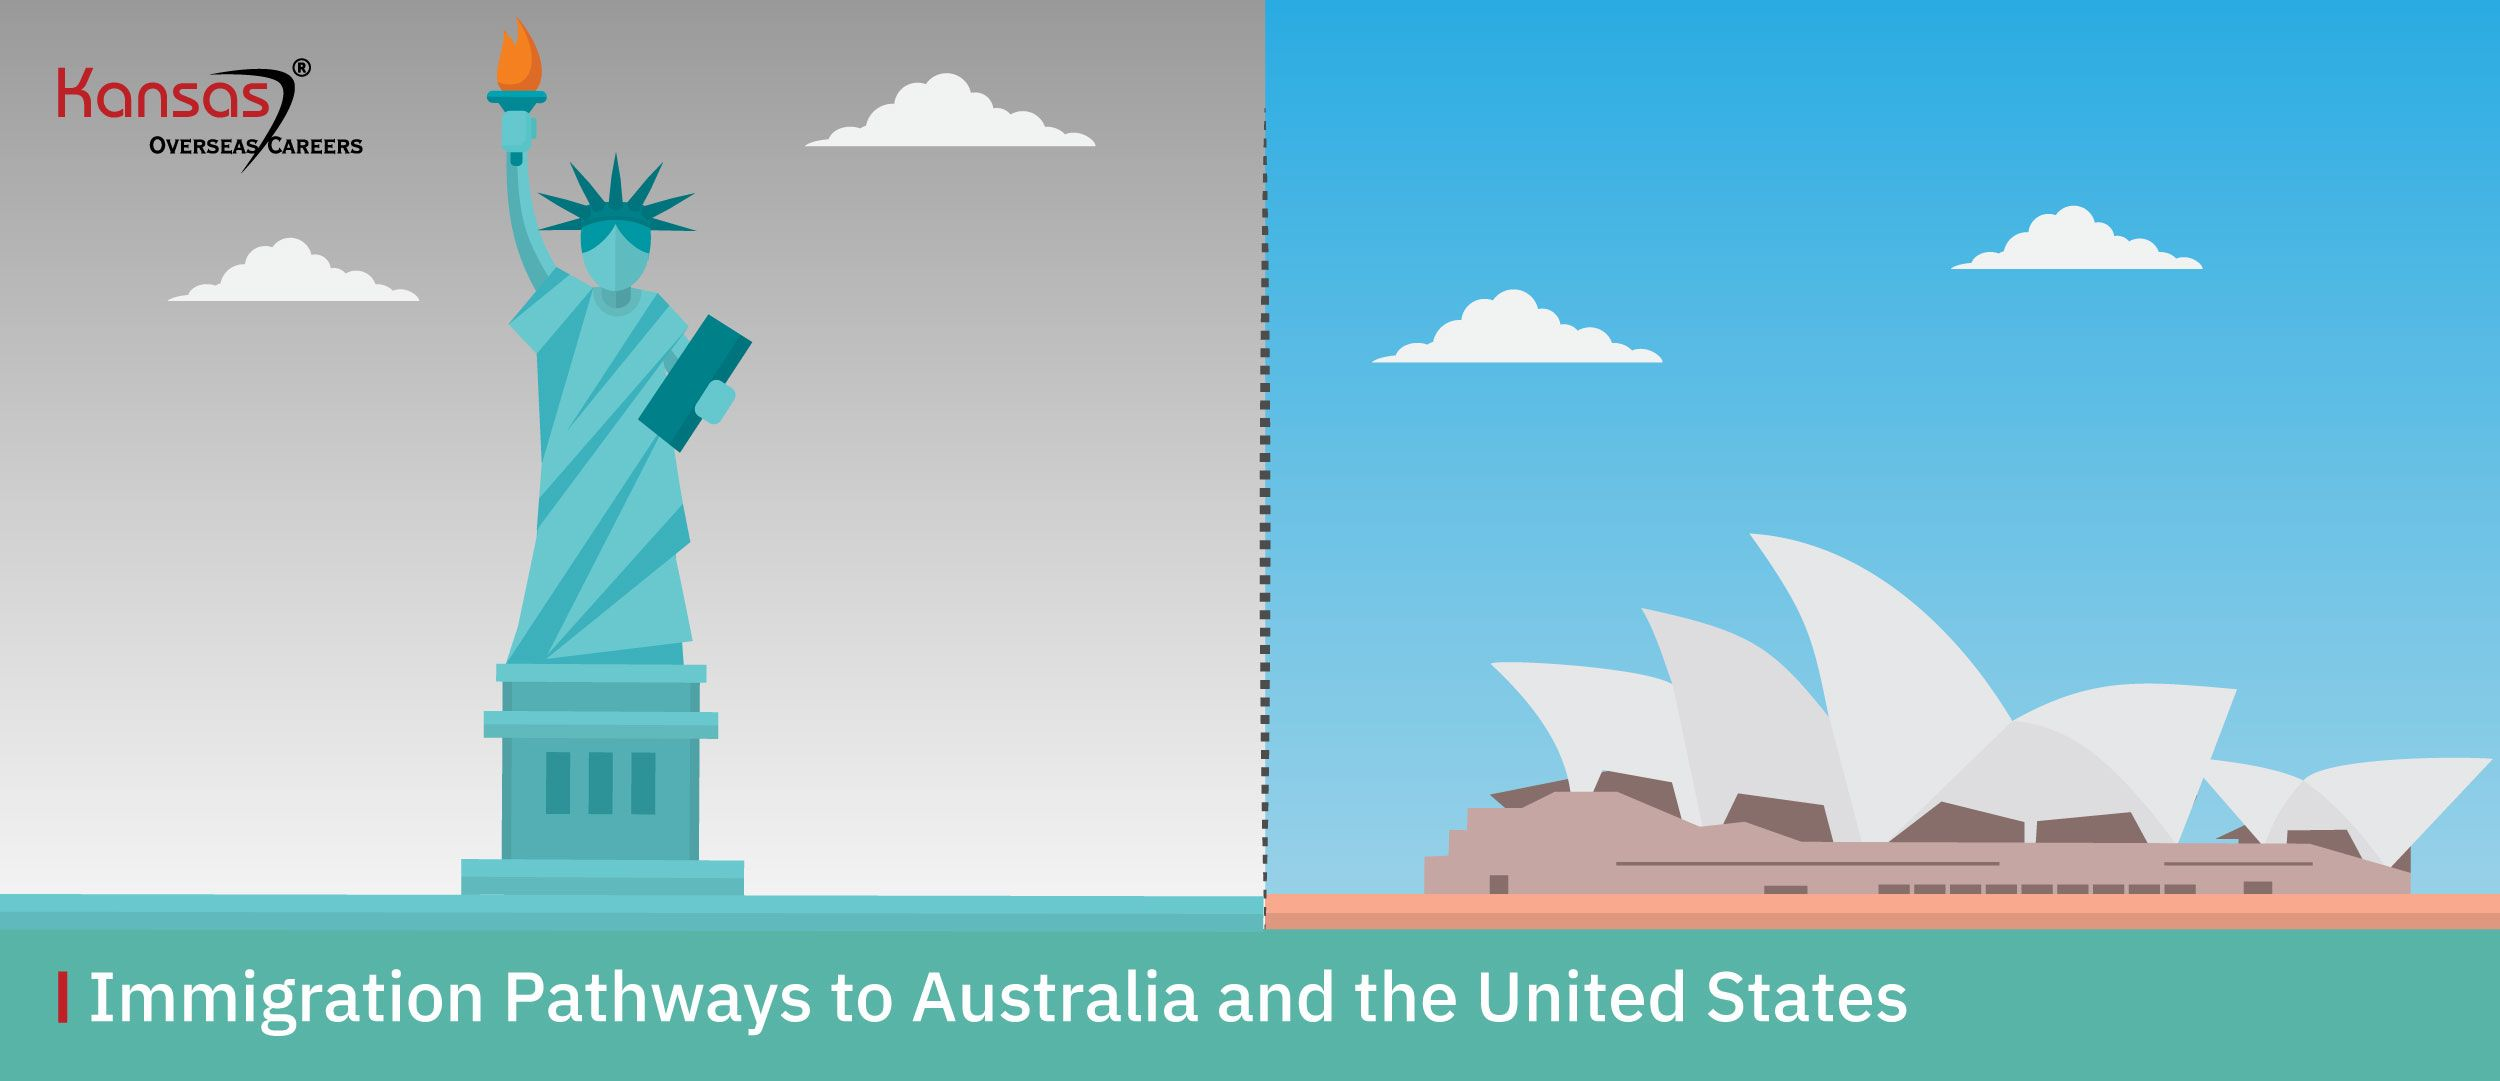 Immigration-Pathways-to-Australia-and-the-United-States